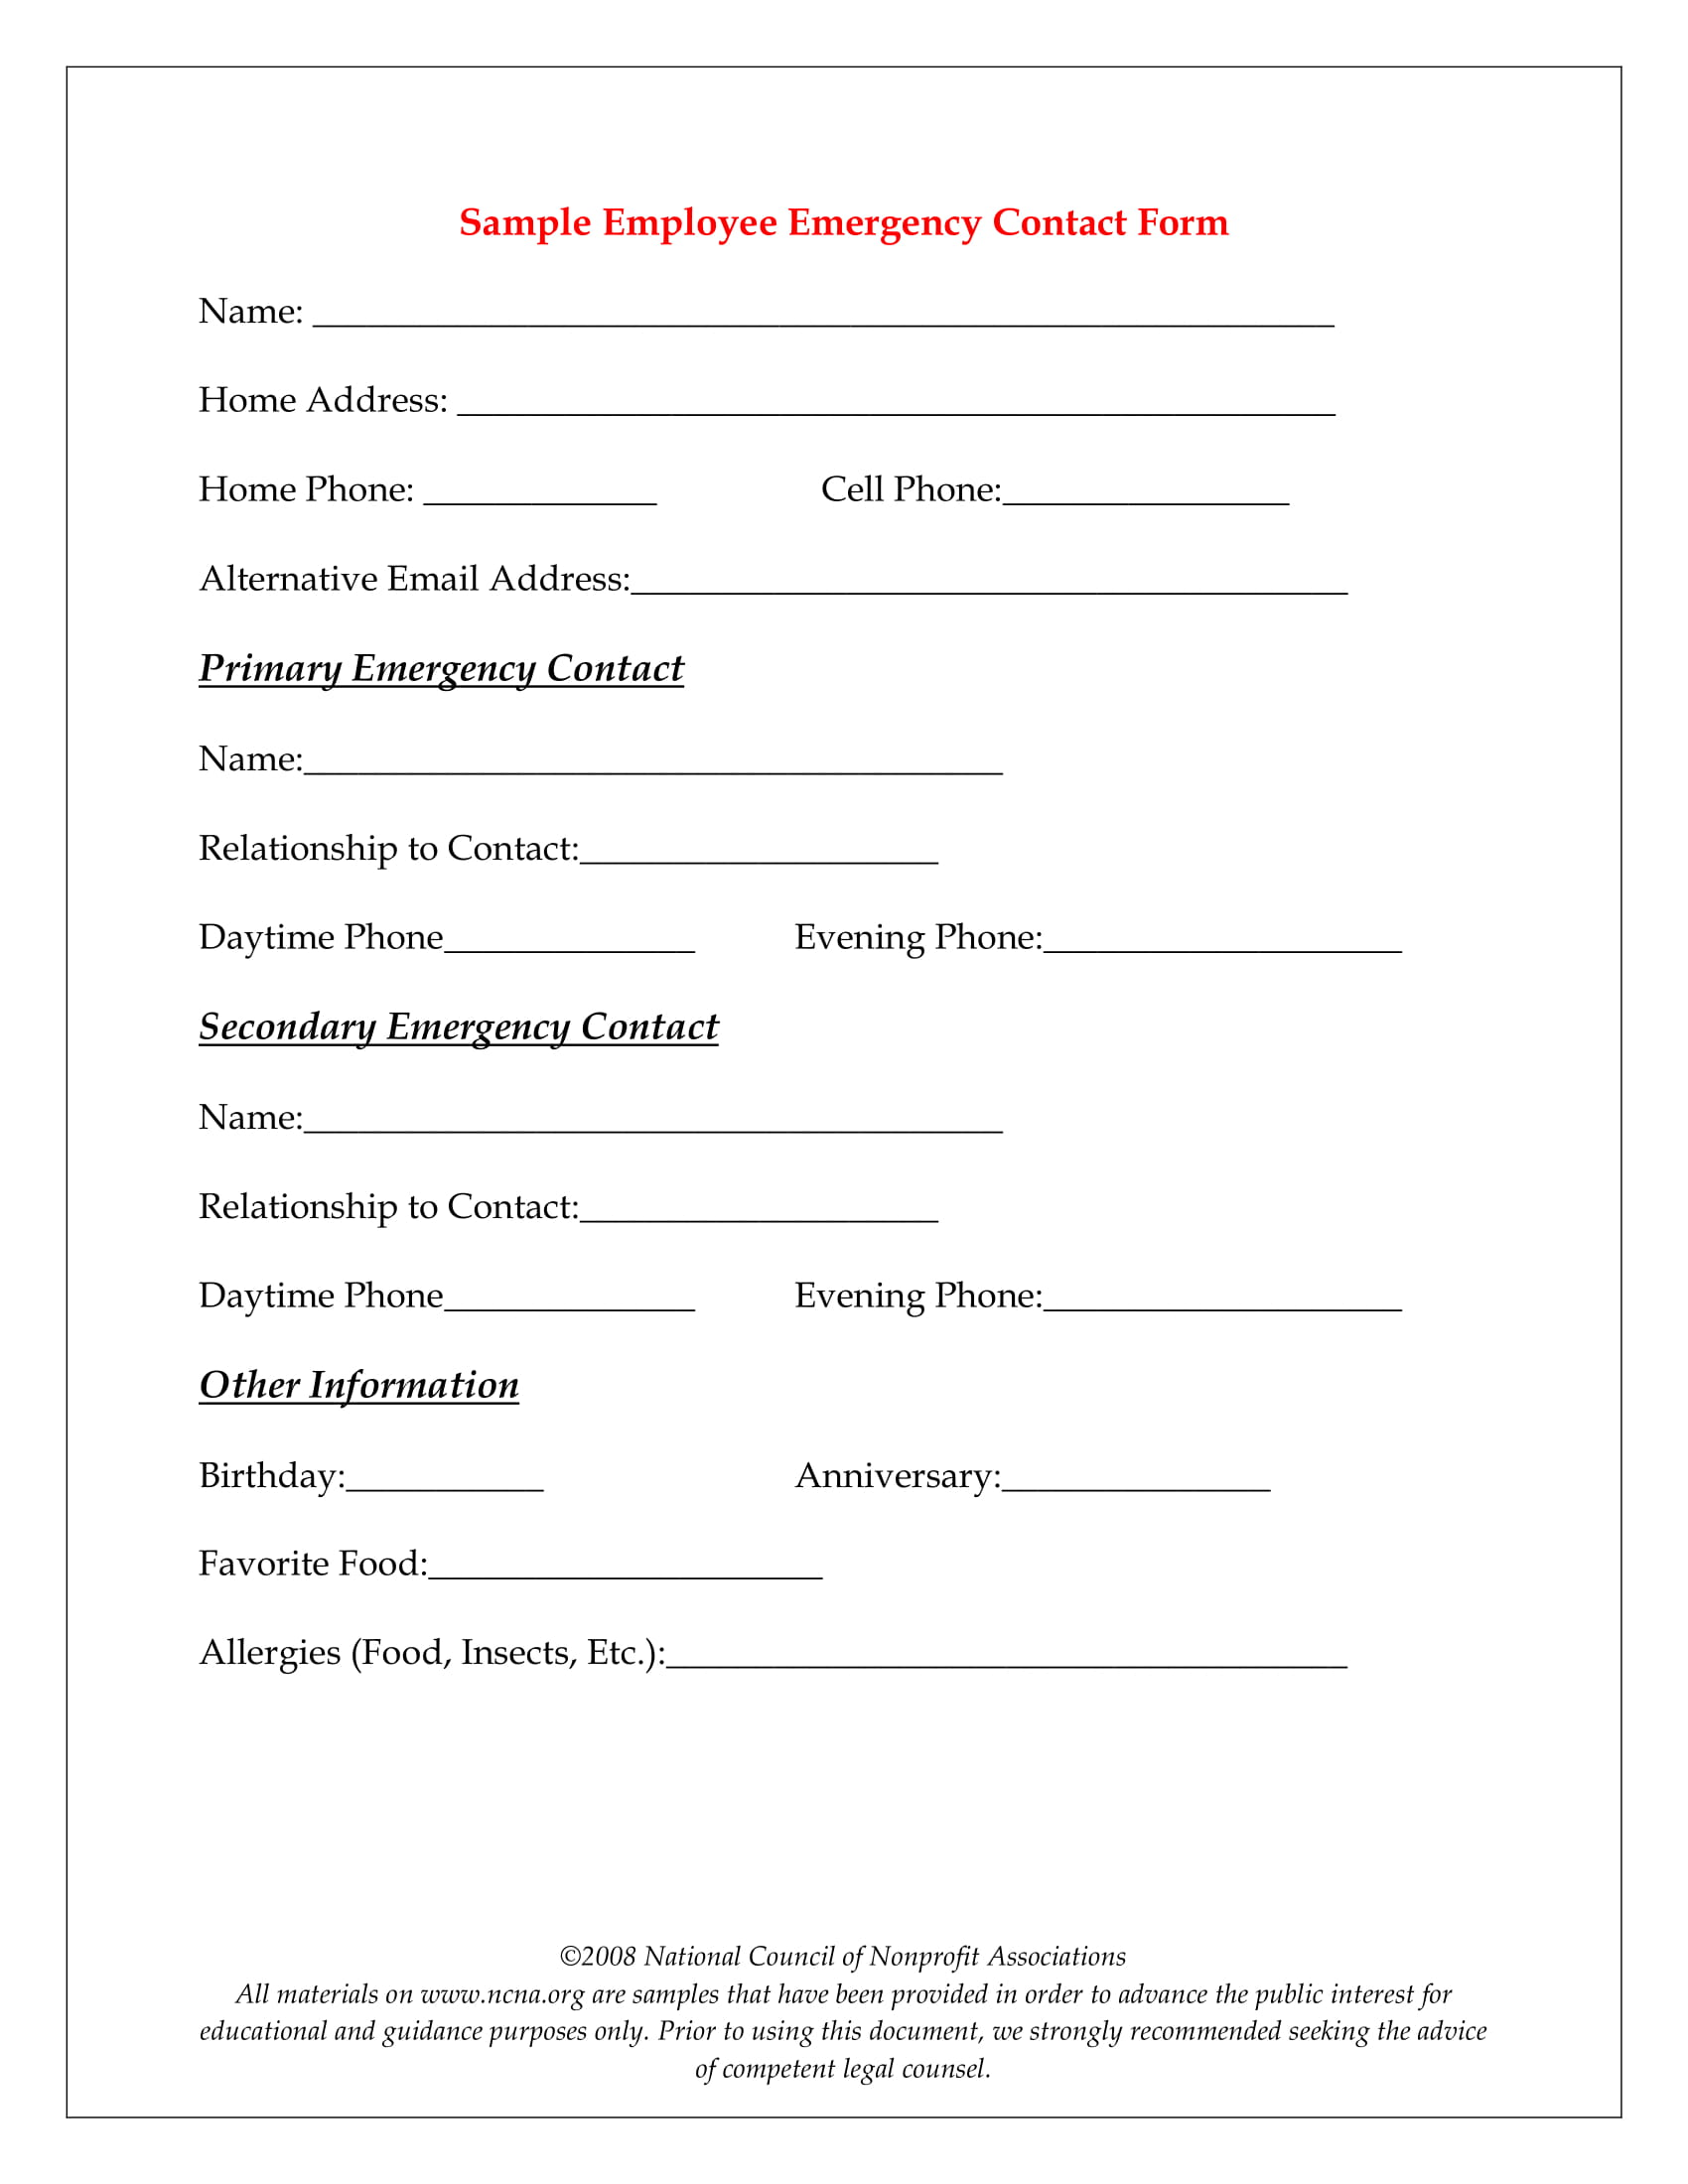 photo regarding Printable Emergency Contact Form named 10+ Crisis Content Kind Illustrations - PDF Illustrations